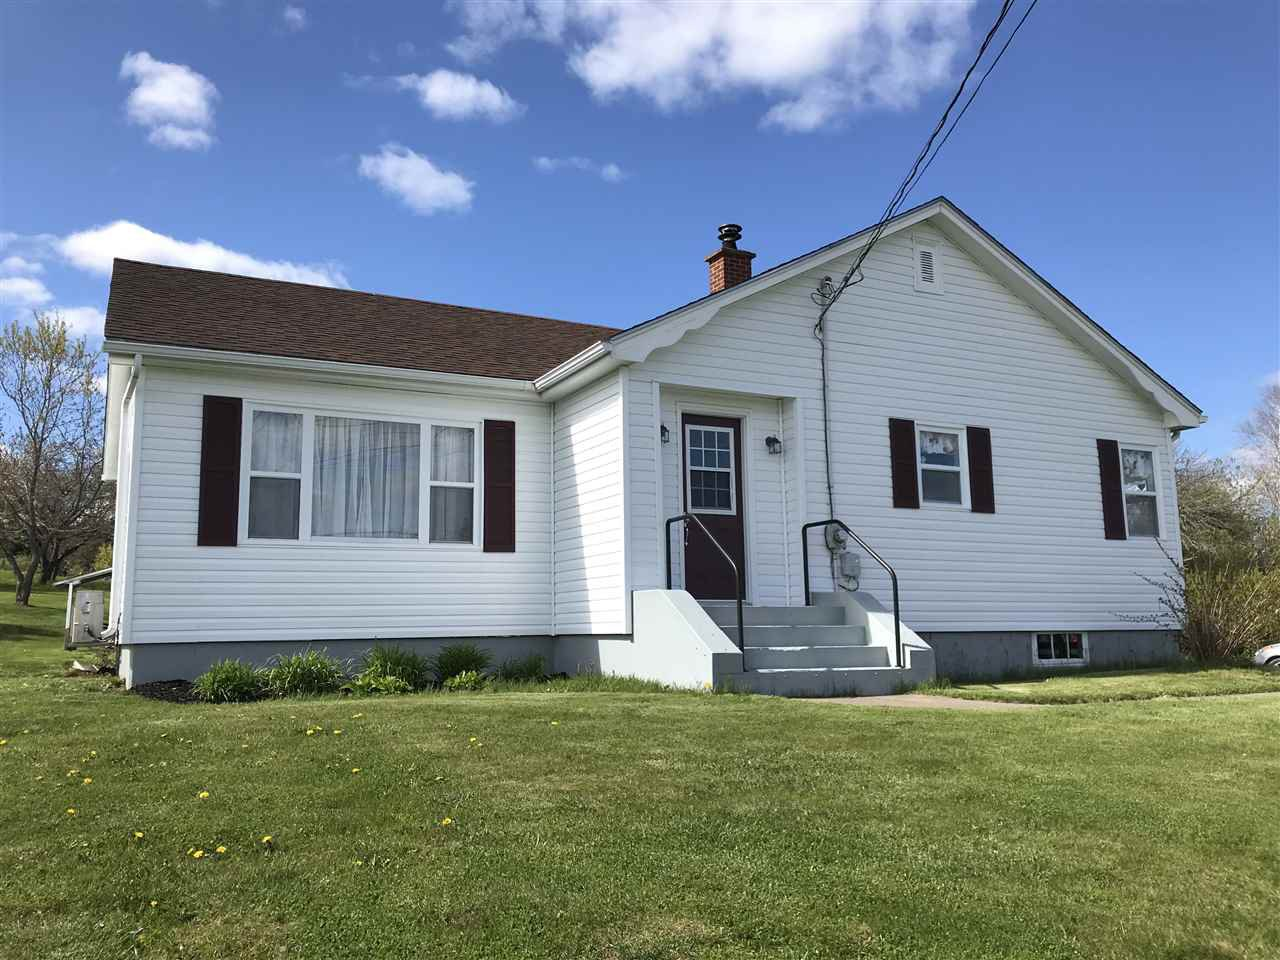 Main Photo: 2291 Highway 376 in Lyons Brook: 108-Rural Pictou County Residential for sale (Northern Region)  : MLS®# 201901587